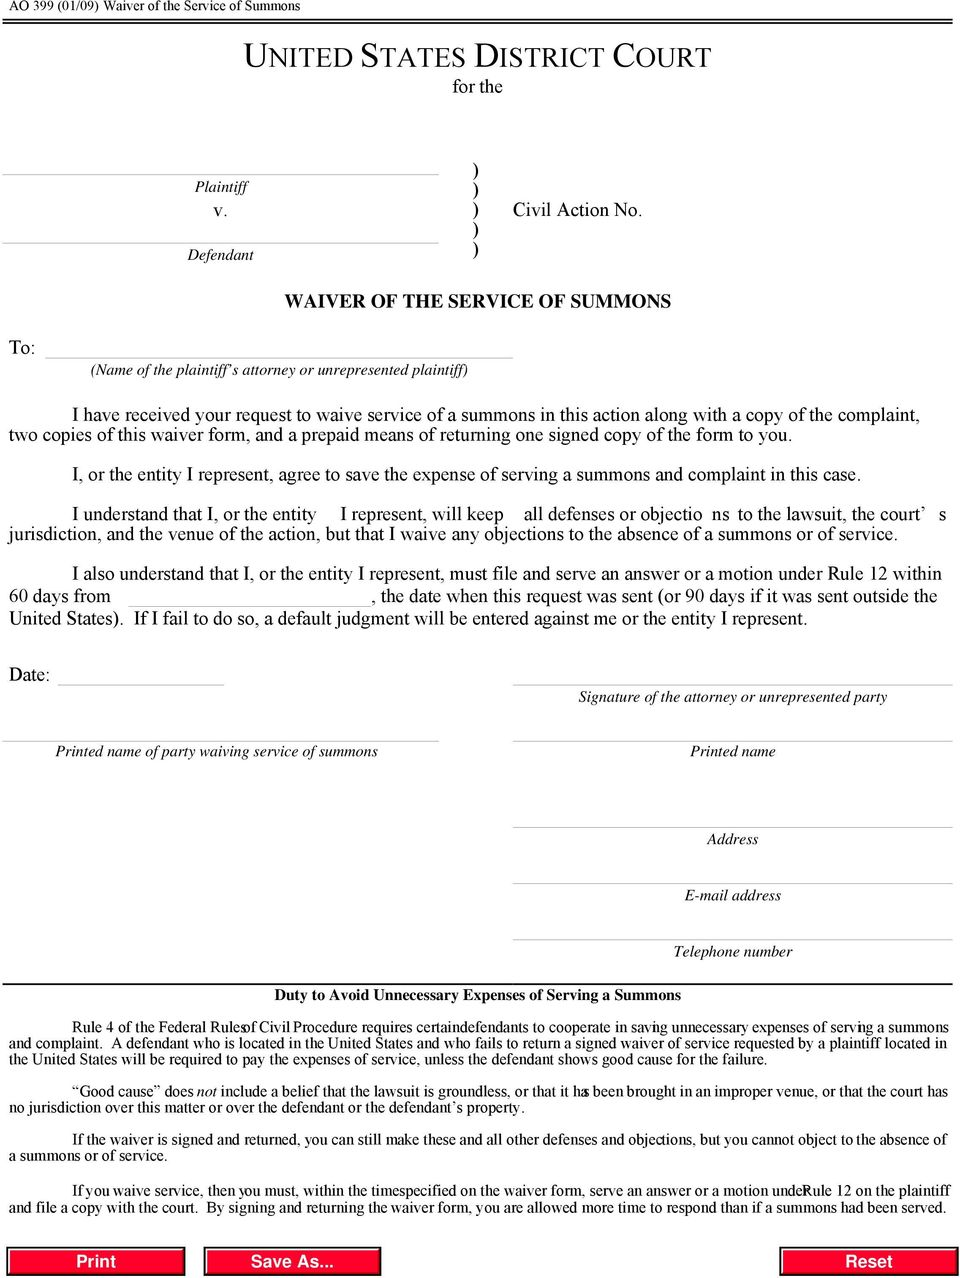 of the complaint, two copies of this waiver form, and a prepaid means of returning one signed copy of the form to you.